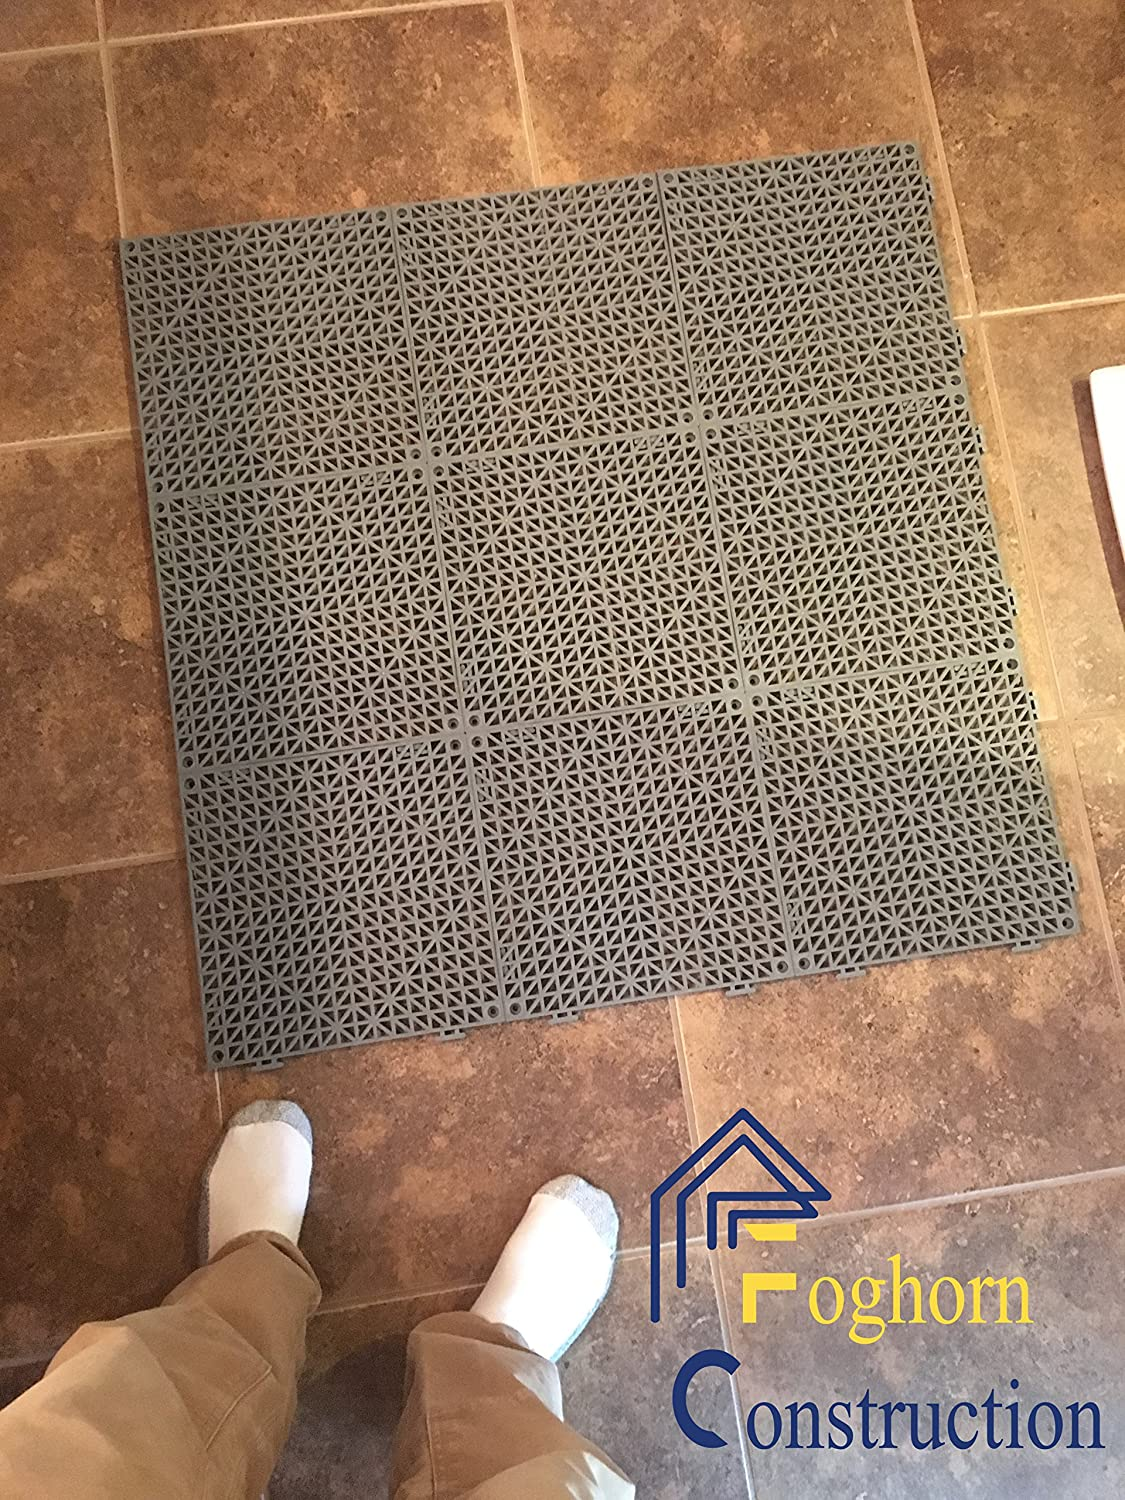 6 with tabs, 6 Without - Wet Areas Like Pool Shower Locker-Room Bathroom Deck Patio Garage Boat 4 Corners Non-Slip Tread - Can be Cut to fit Set 12 Black Edge Pieces